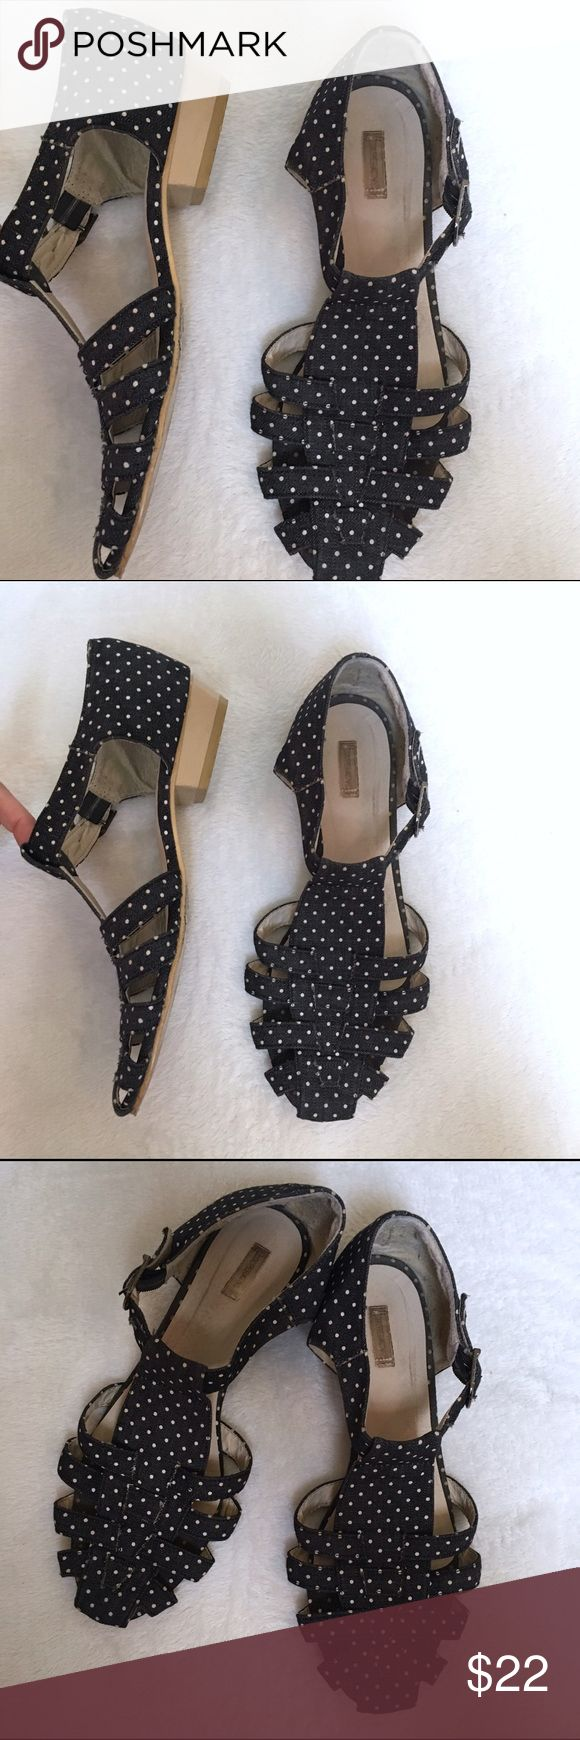 Urban Outfitters closed-toe polka dot sandals These polka dot closed-toe sandals from UO brand Cooperative feature a very slight heel. Cute to dress up a plain summer outfit! Urban Outfitters Shoes Sandals